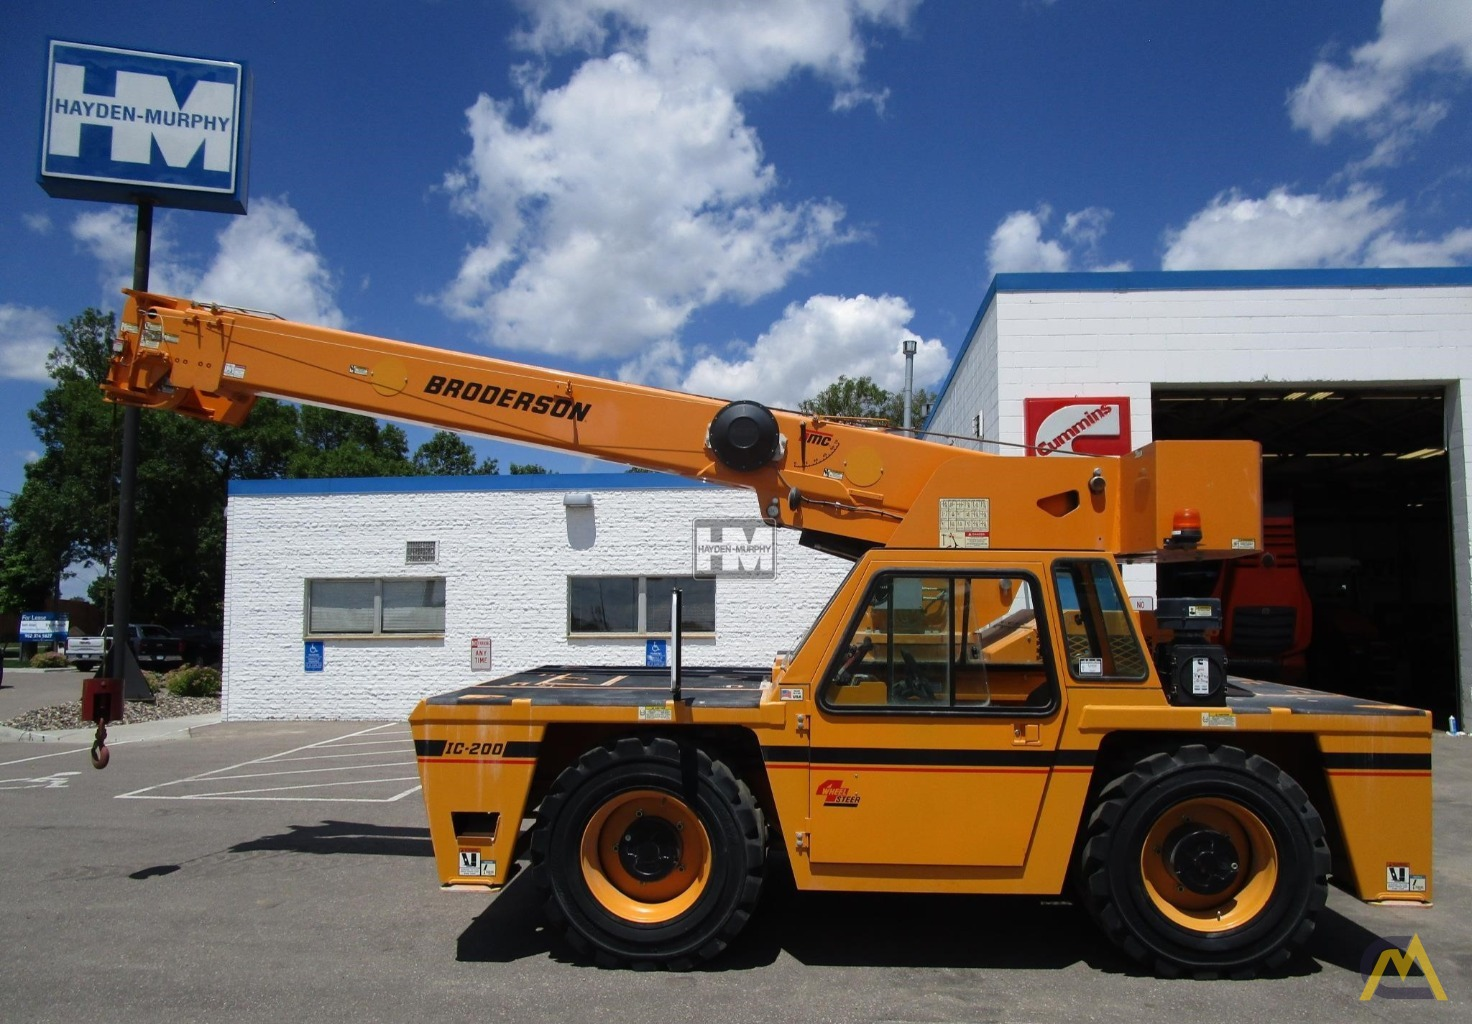 Broderson IC-200-2H 15-ton Industrial Carry Deck Crane 10